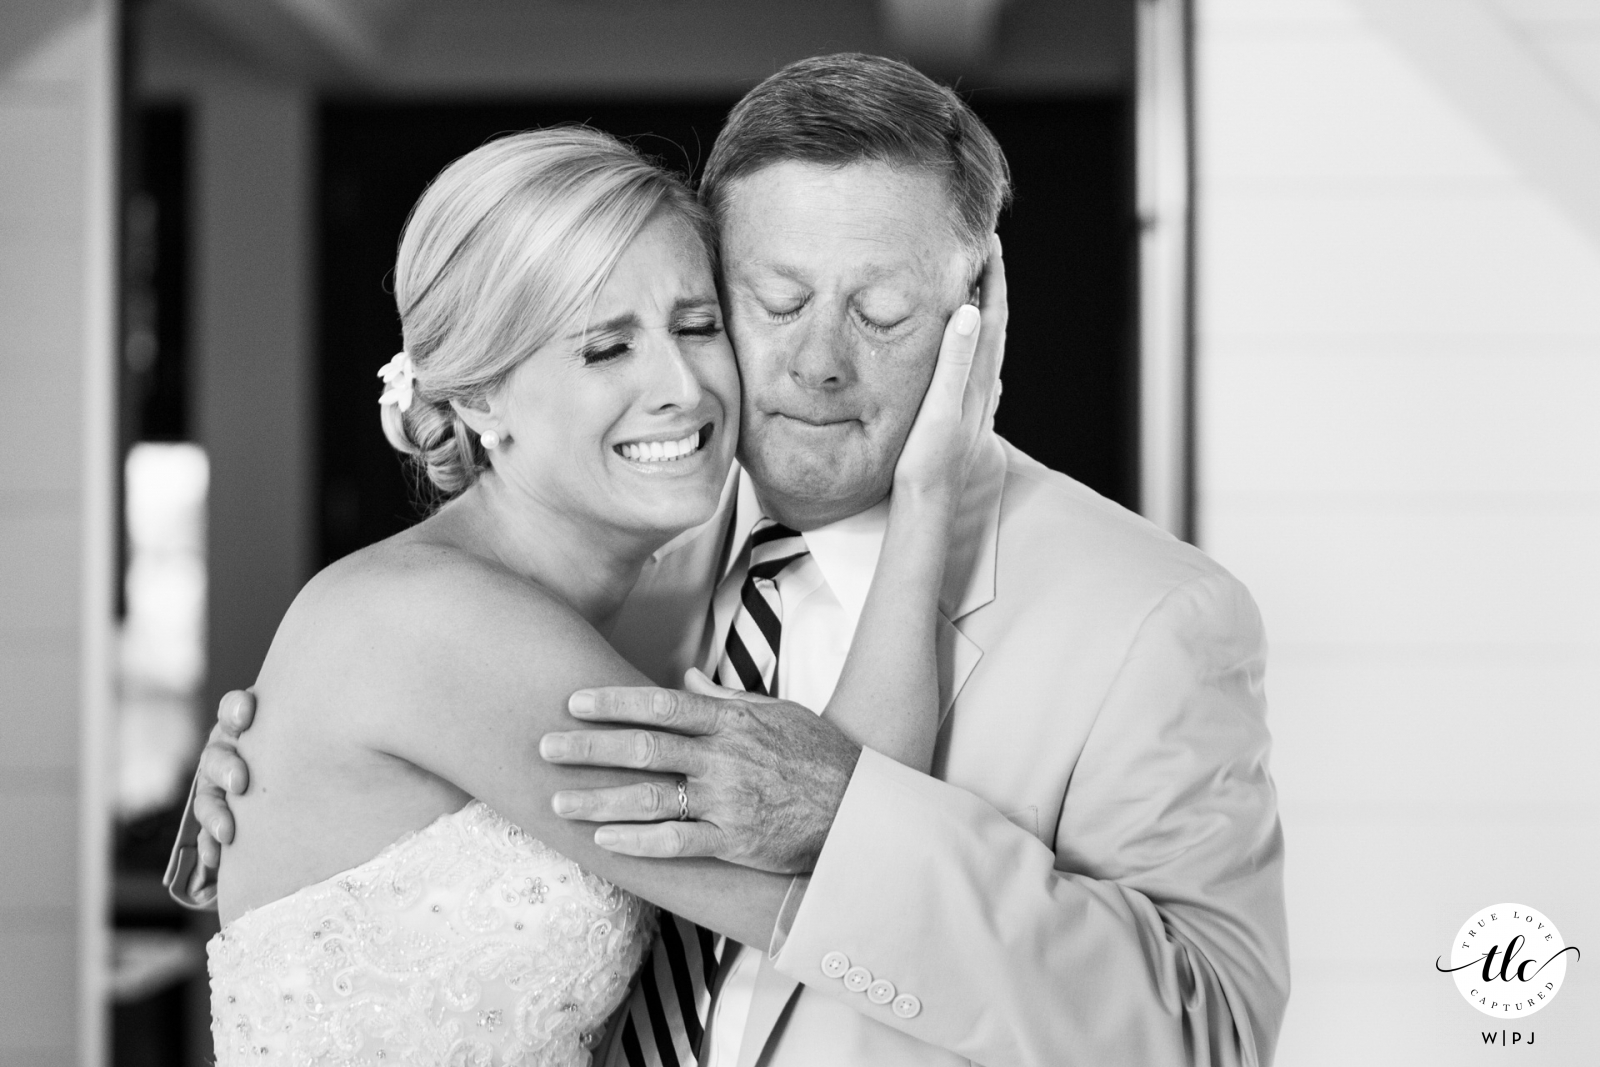 Nantucket Island emotional wedding day moment of a MA Bride and her father sharing an emotional and tearful hug before the ceremony